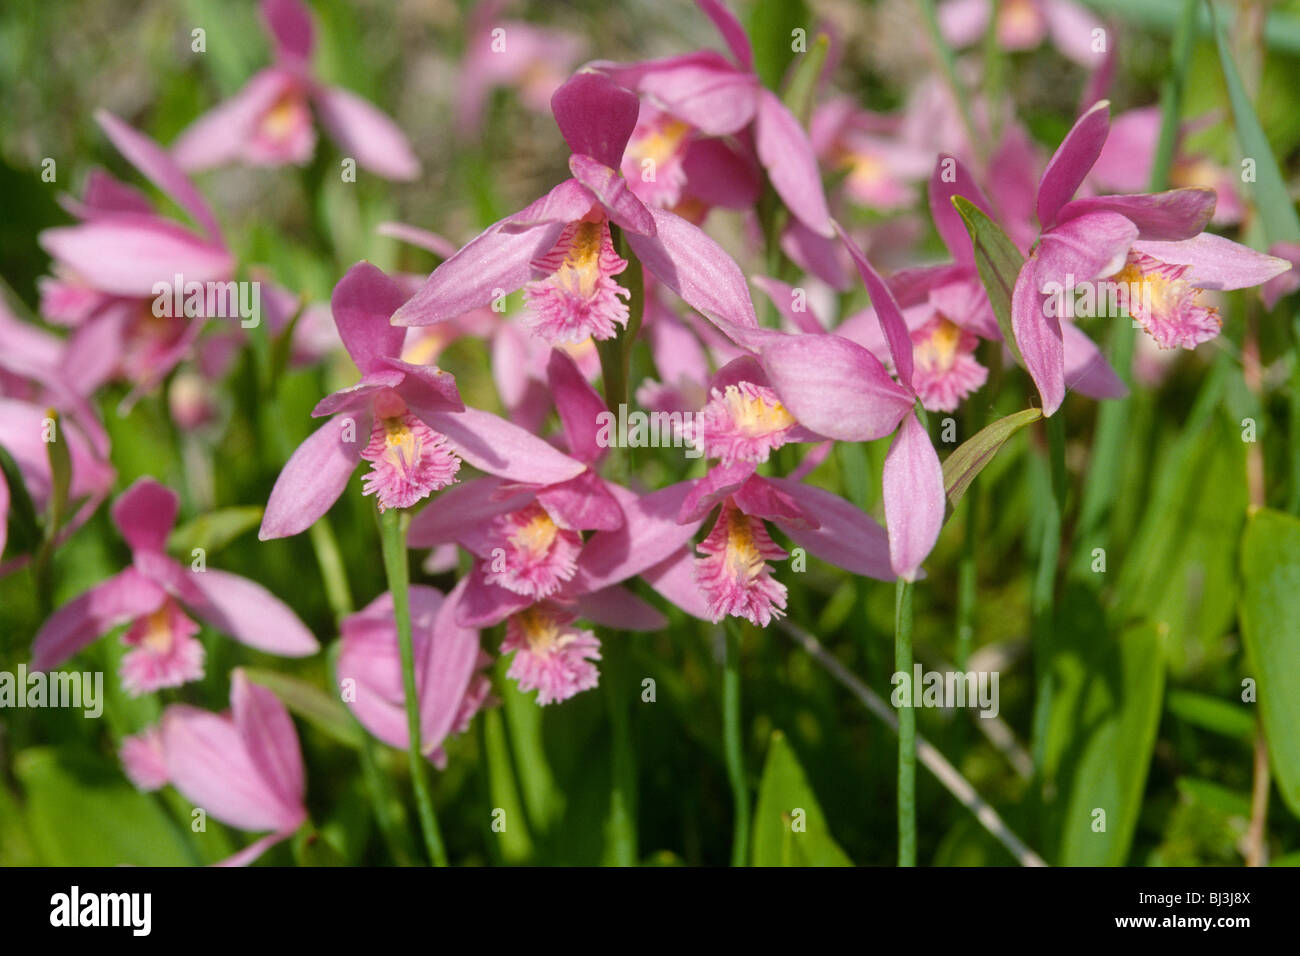 Rose pogonia orchids (Pogonia ophioglossoides) Stock Photo